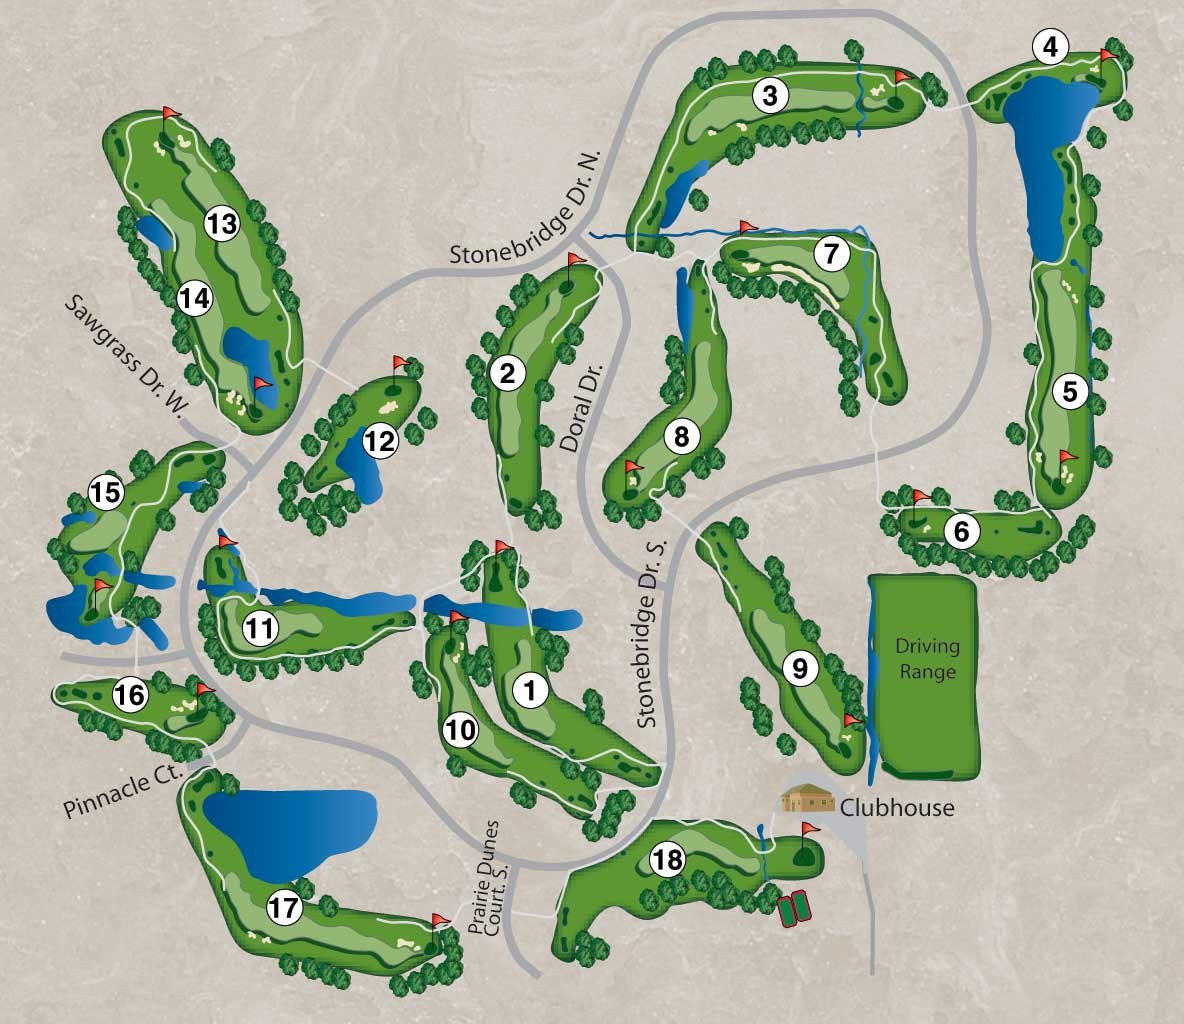 Golf Course Information - Stonebridge Golf Club Ann Arbor on golf packages, modern art map, volleyball map, golf holidays, us road map, civilization world map, golf tours, golf real estate, football soccer map,